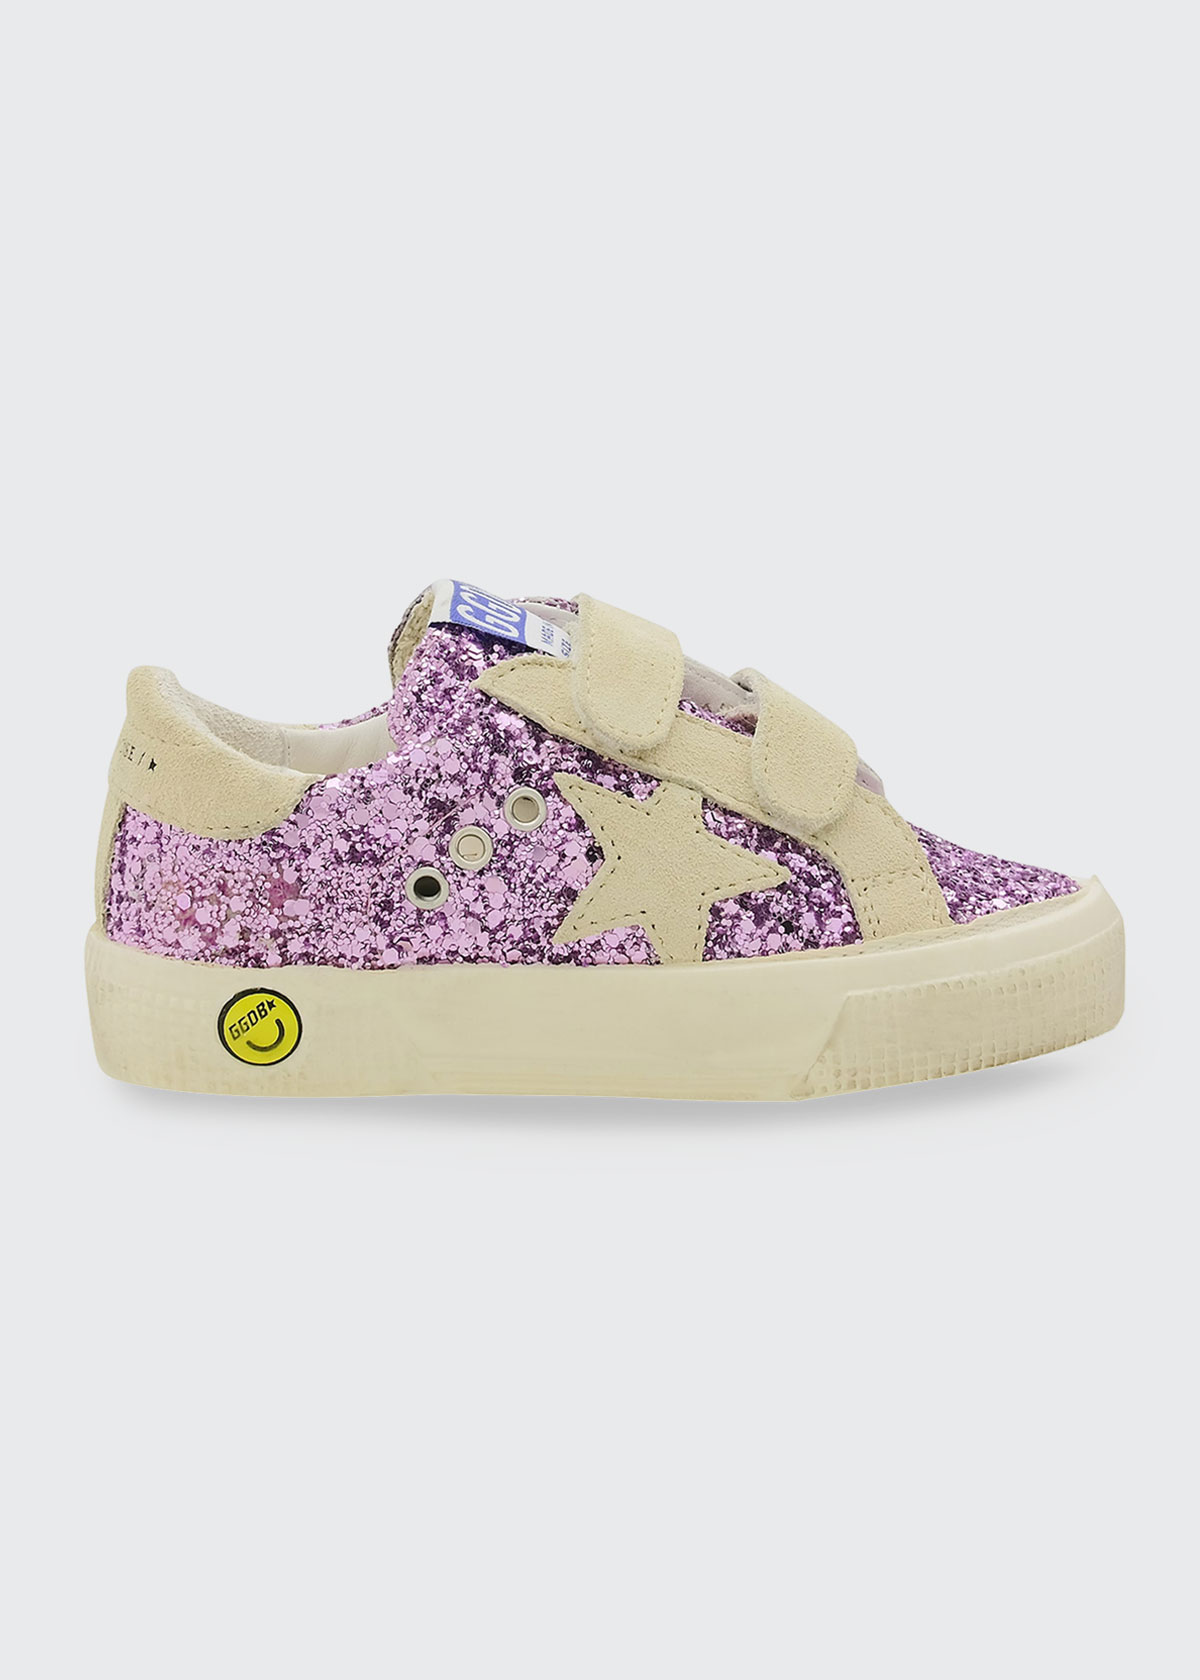 Golden Goose GIRL'S MAY GLITTER GRIP-STRAP SNEAKERS, TODDLERS